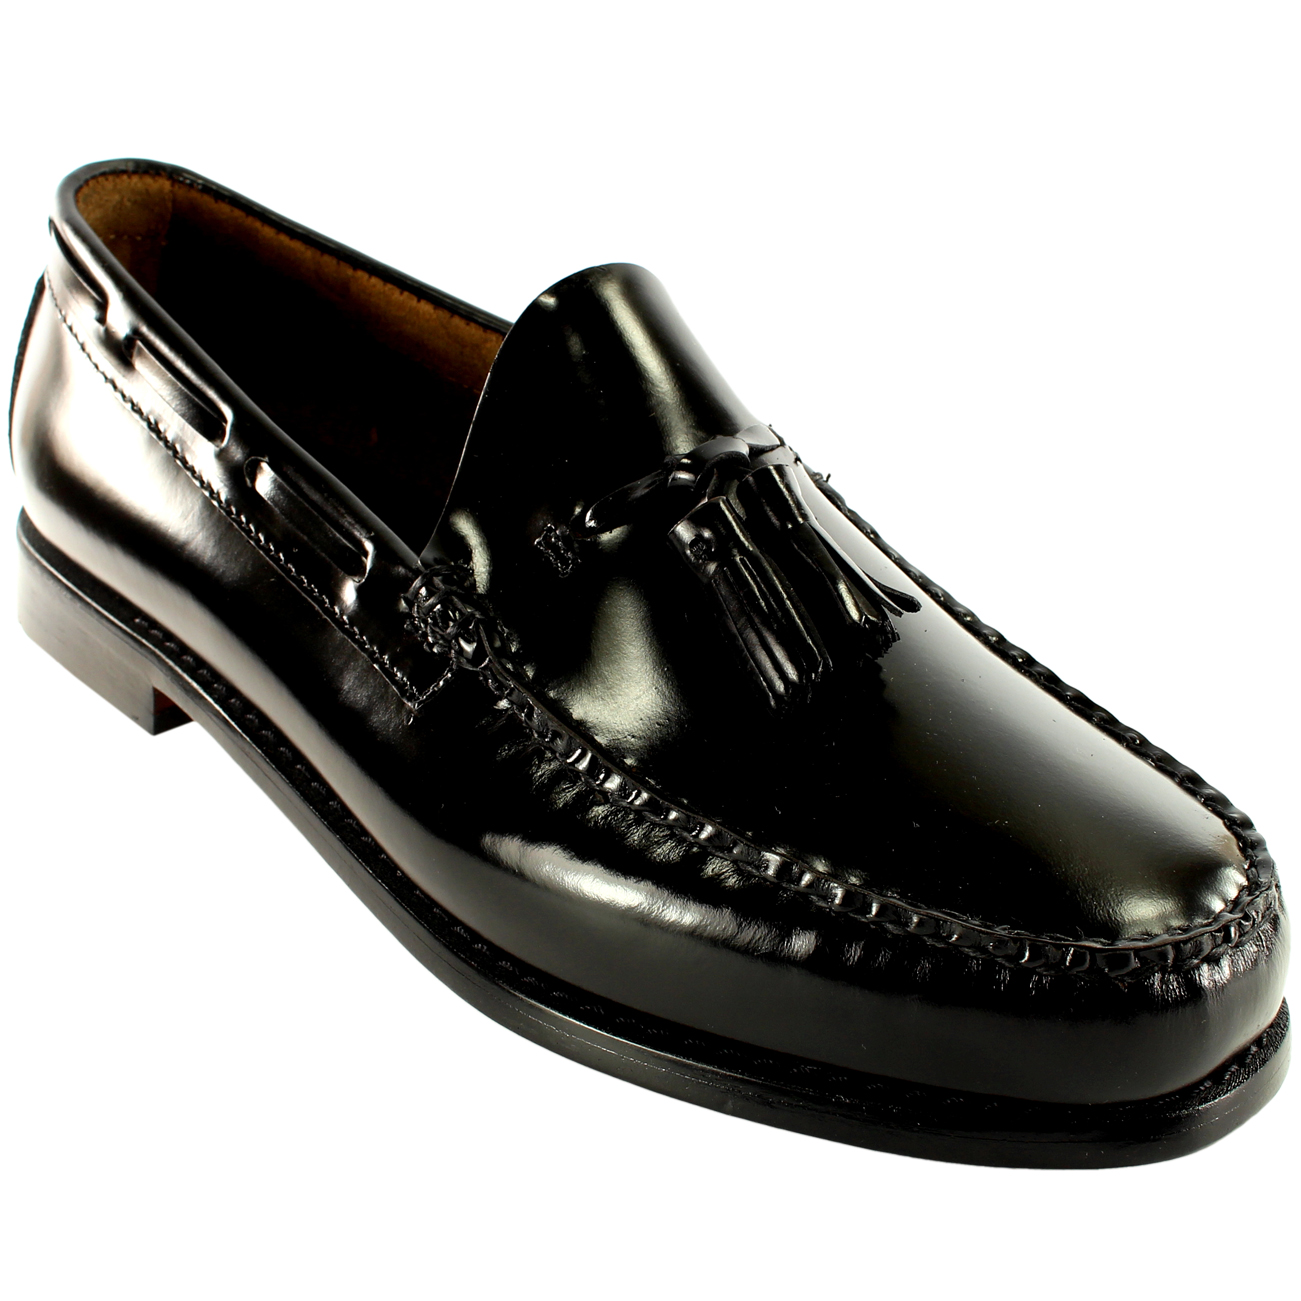 eeacb32b66365b Mens Leather Loafer Shoes Ville Du Muy